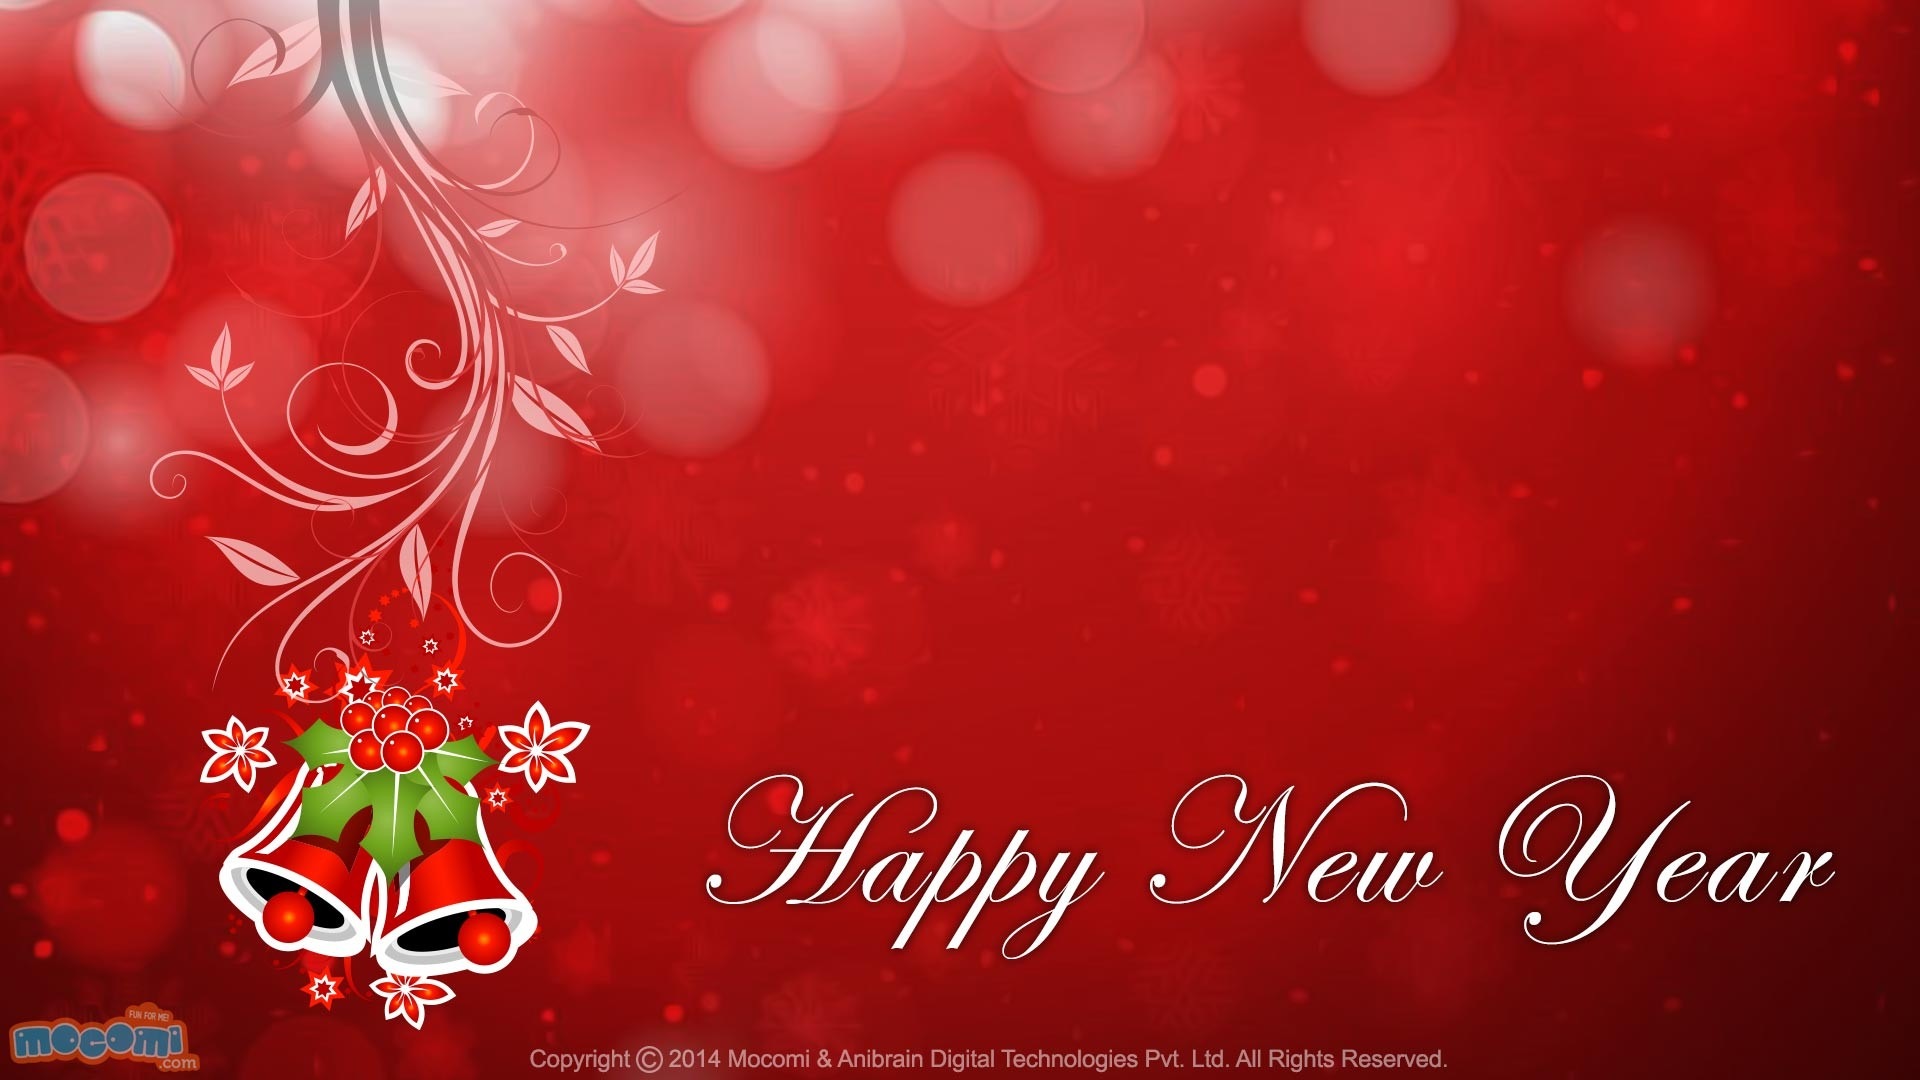 New Year Wallpaper ·① Download Free Backgrounds For